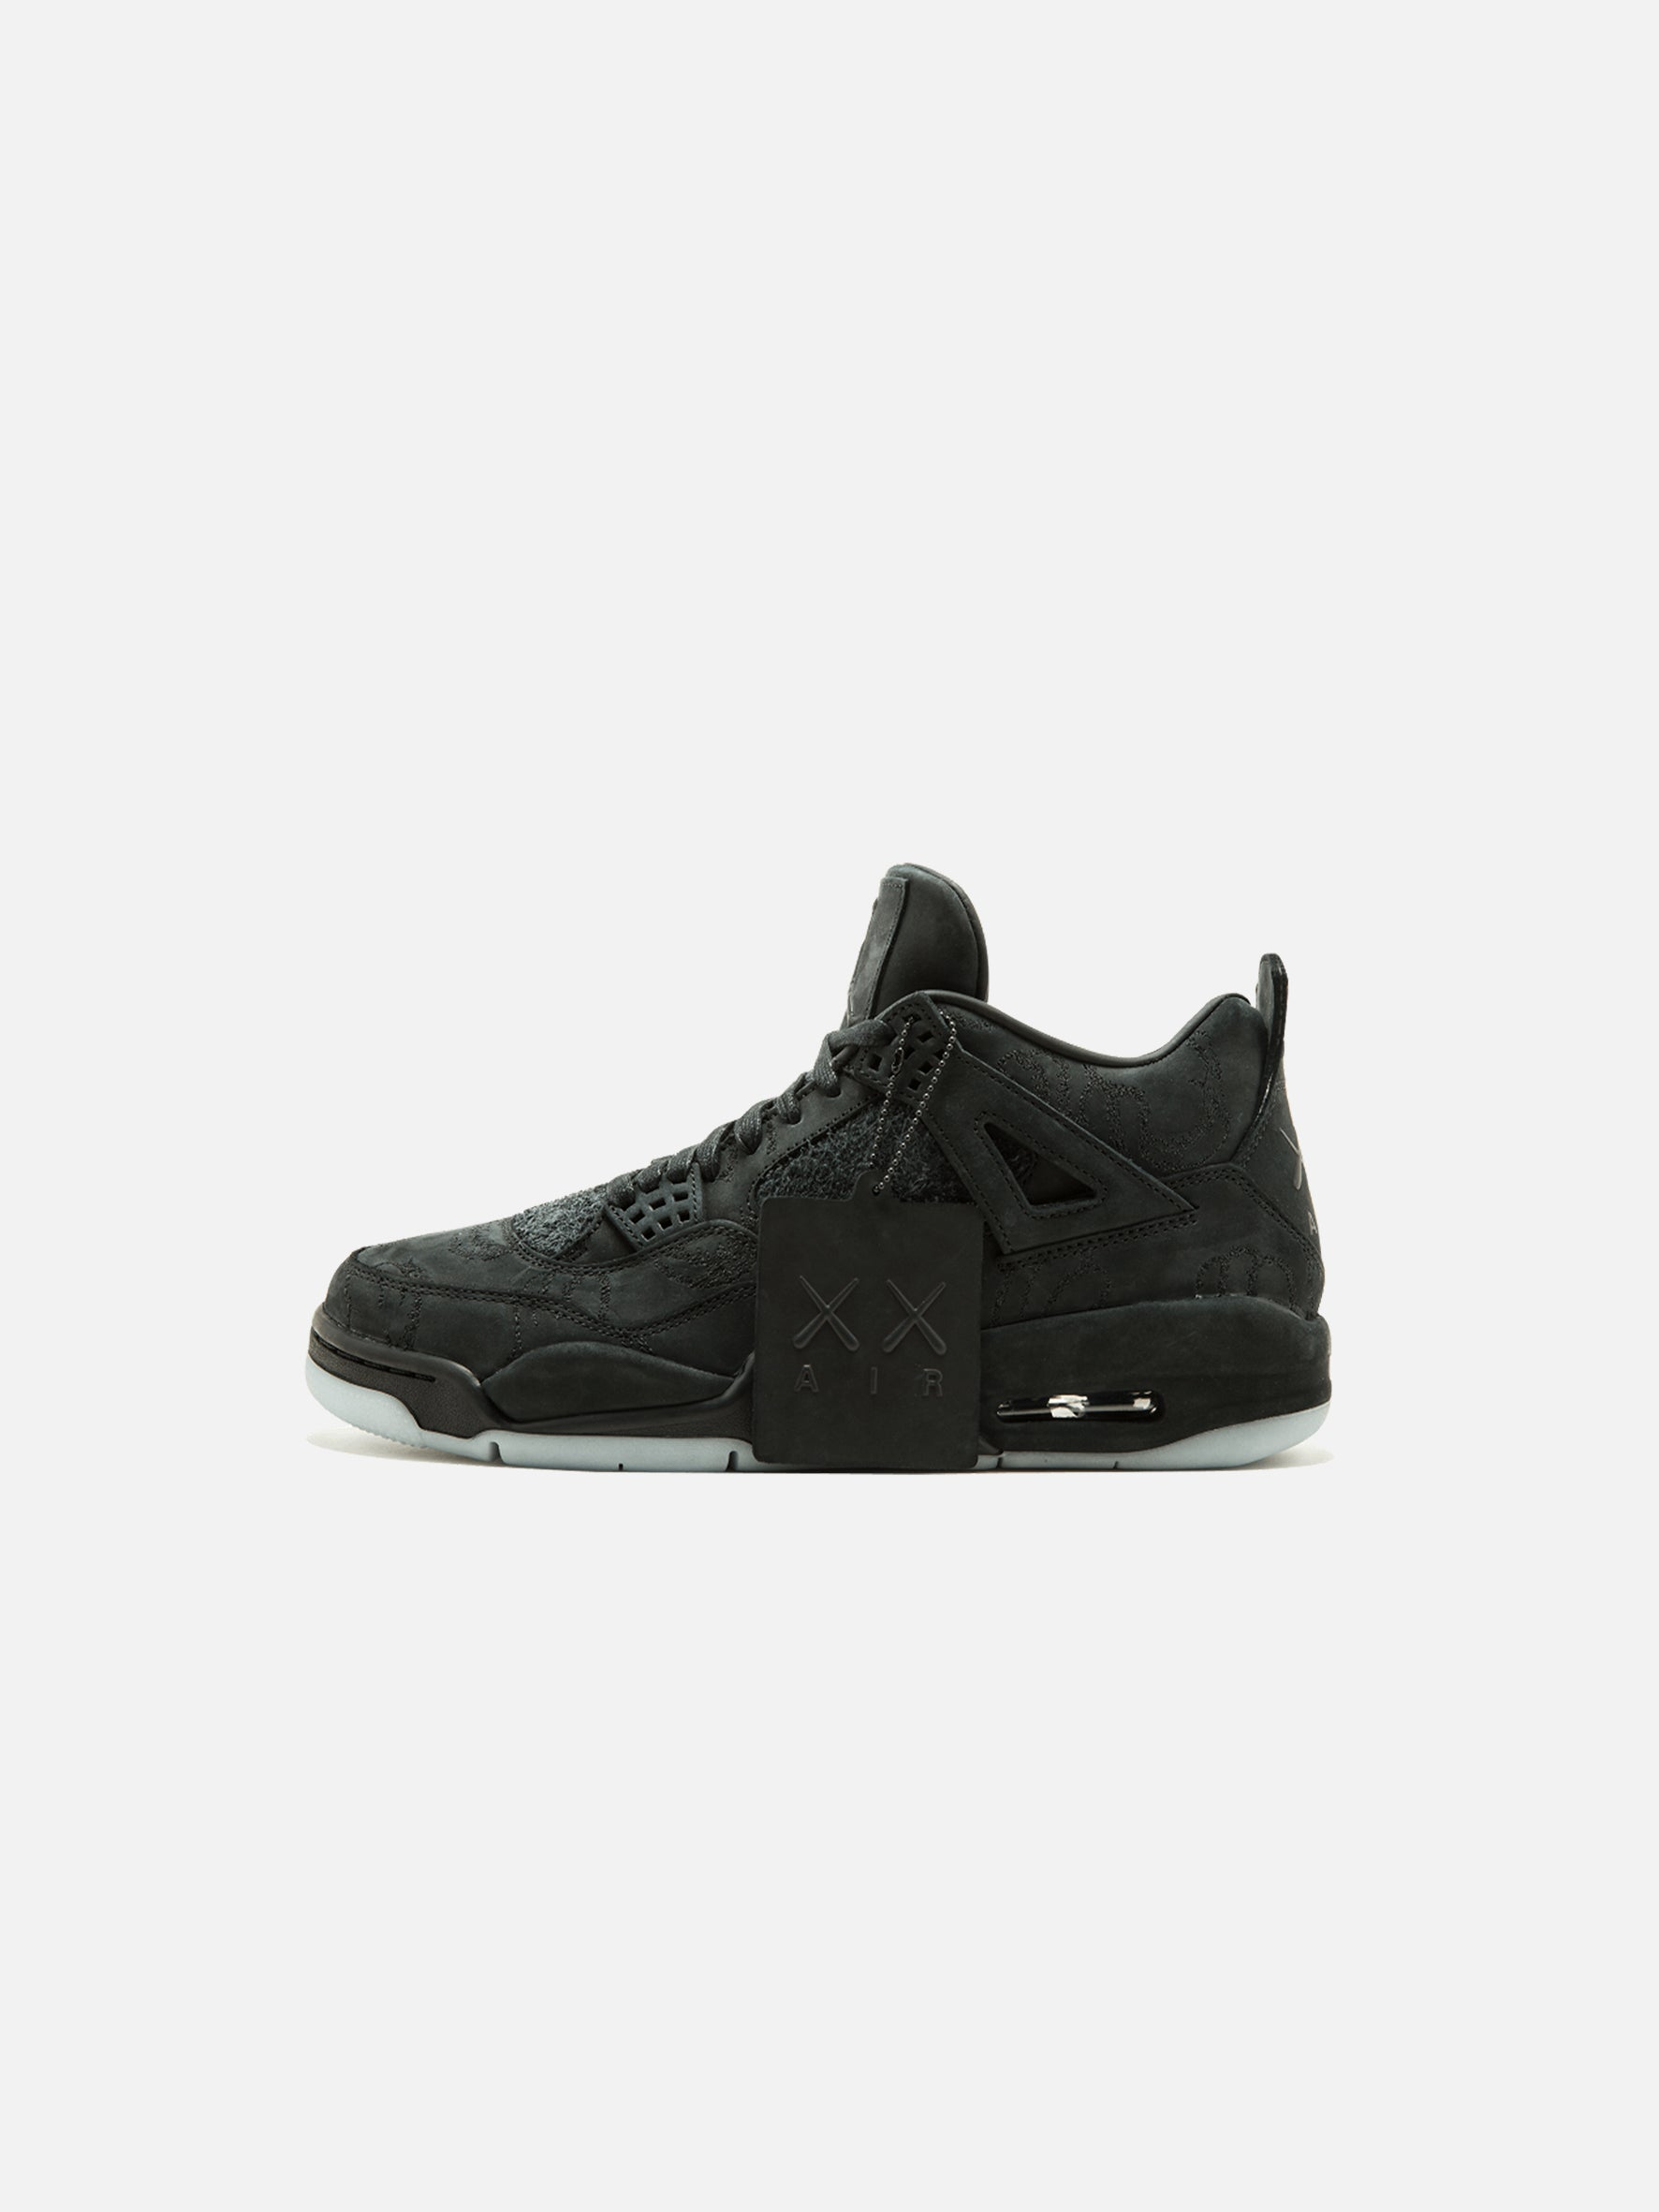 Nike Air Jordan IV KAWS Black